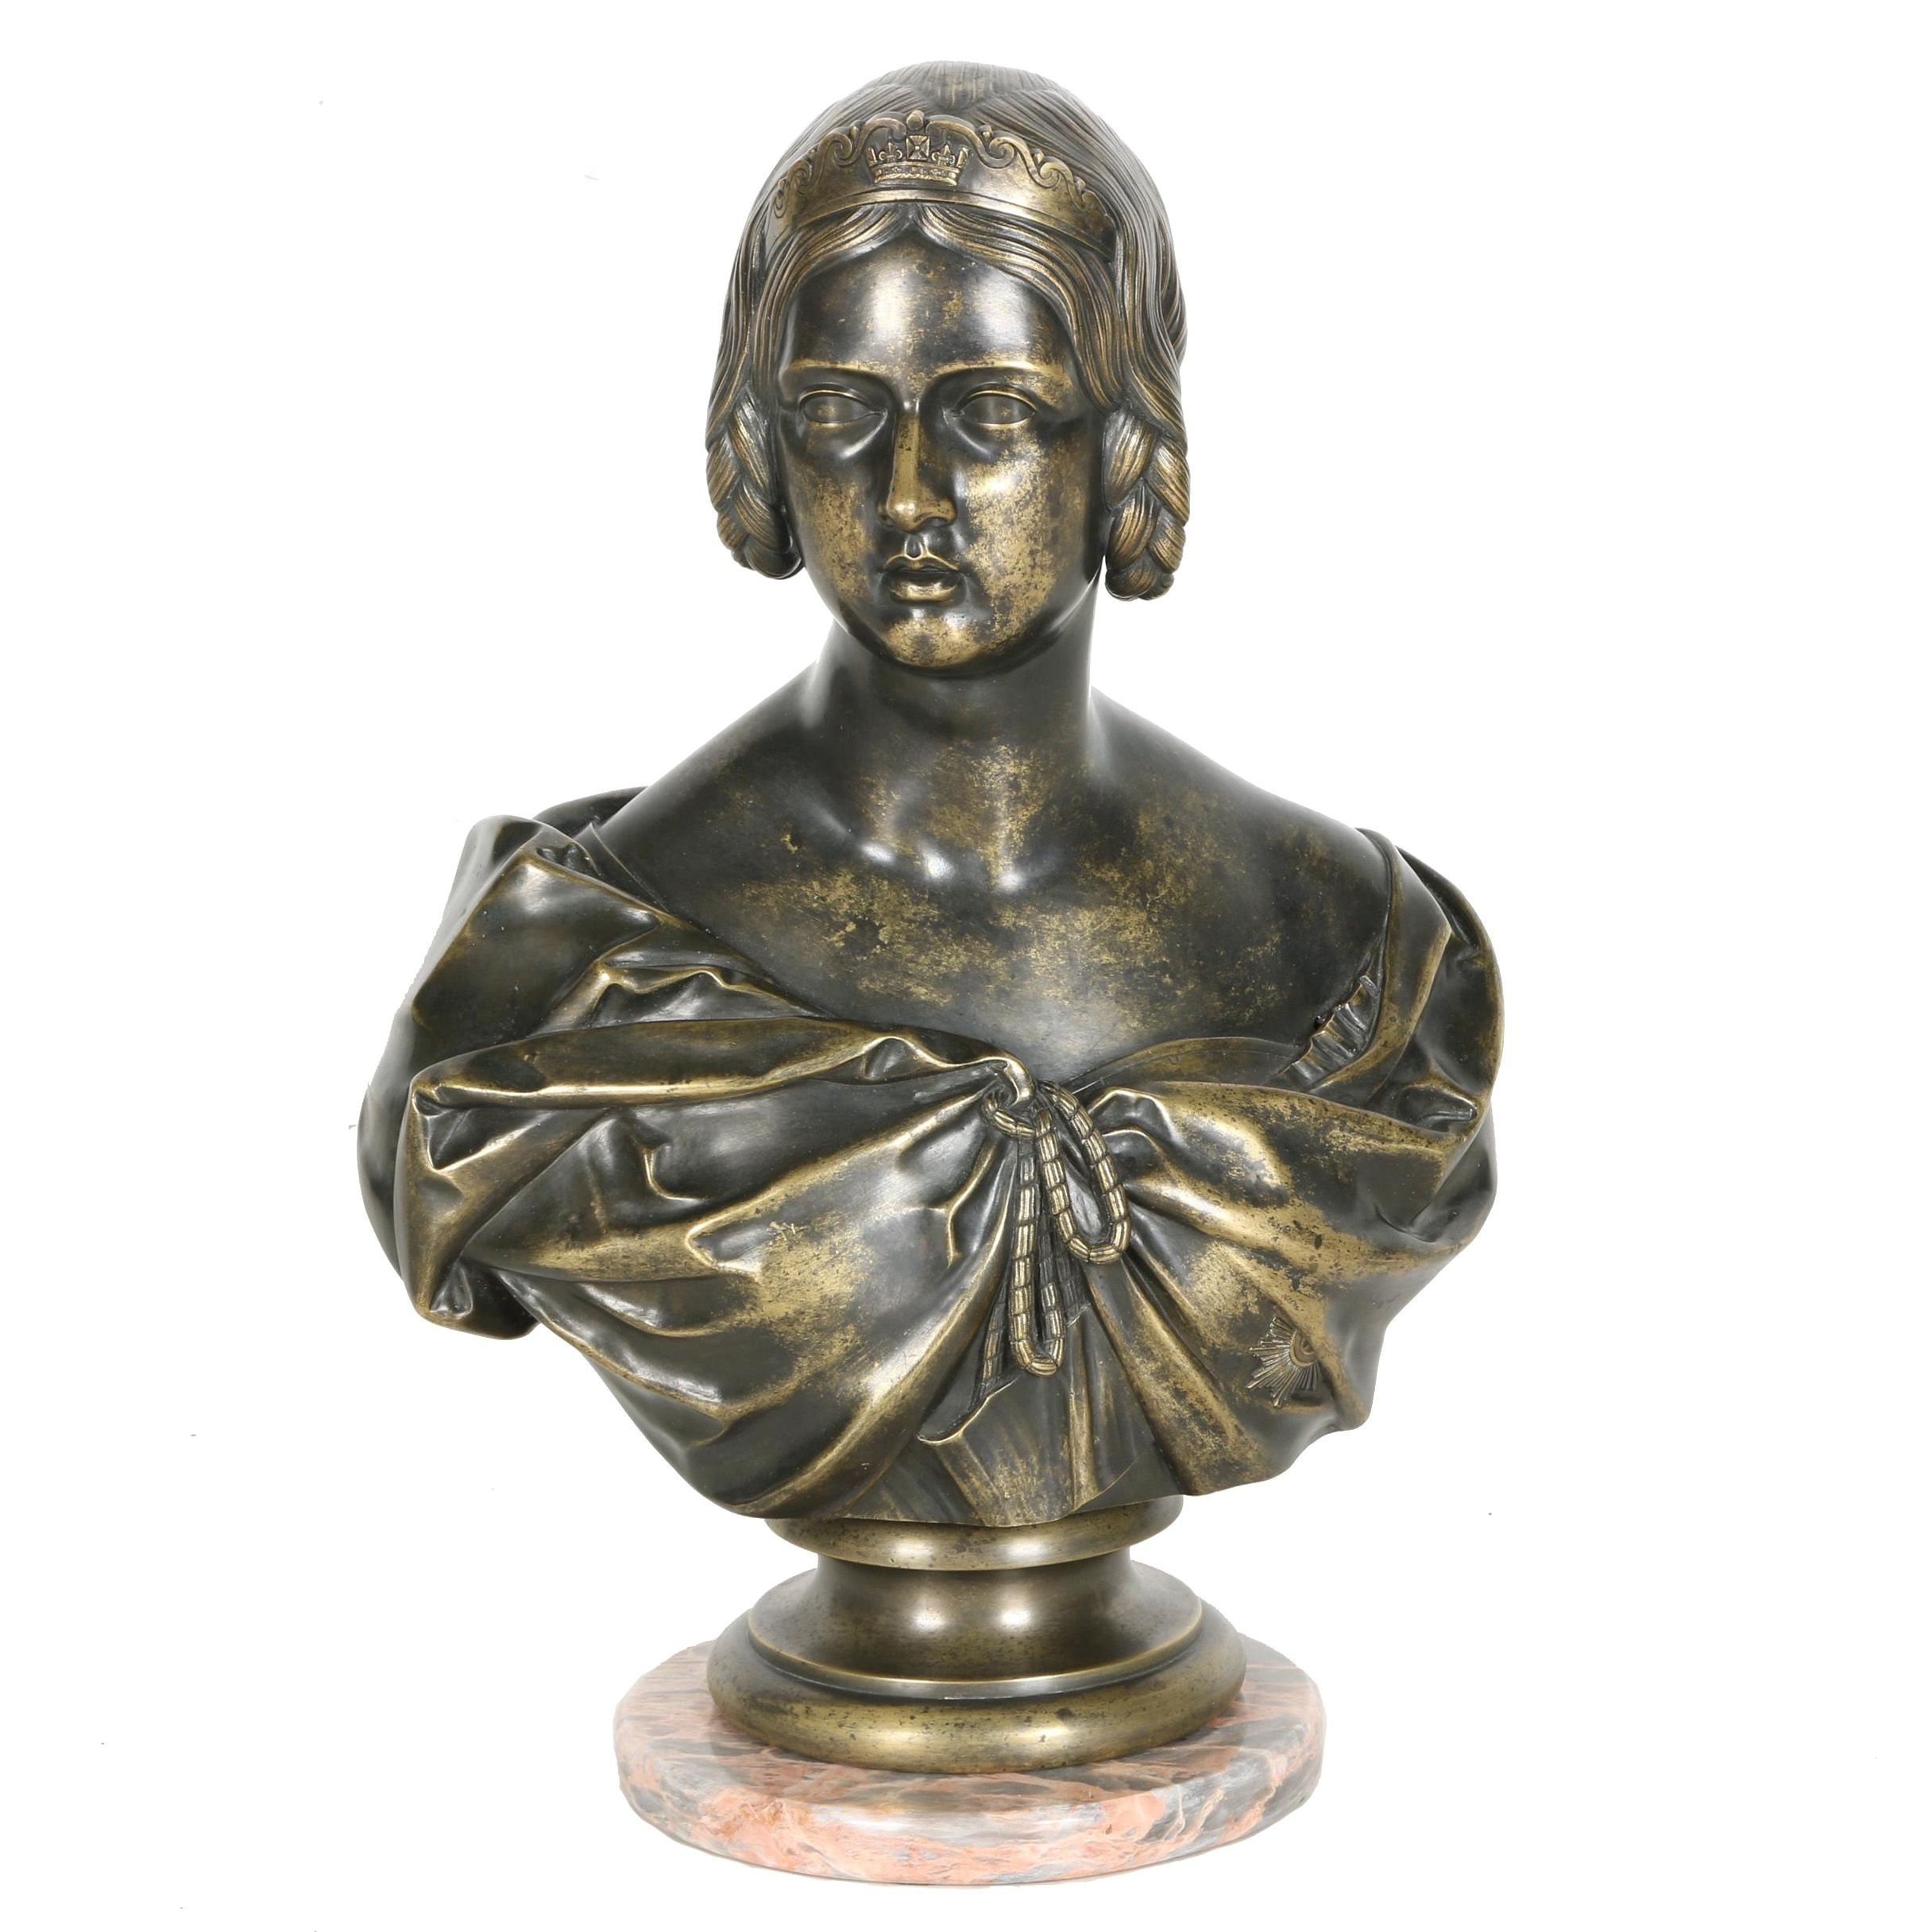 1849 Bronze Bust After Francis Chantrey of a Young Queen Victoria